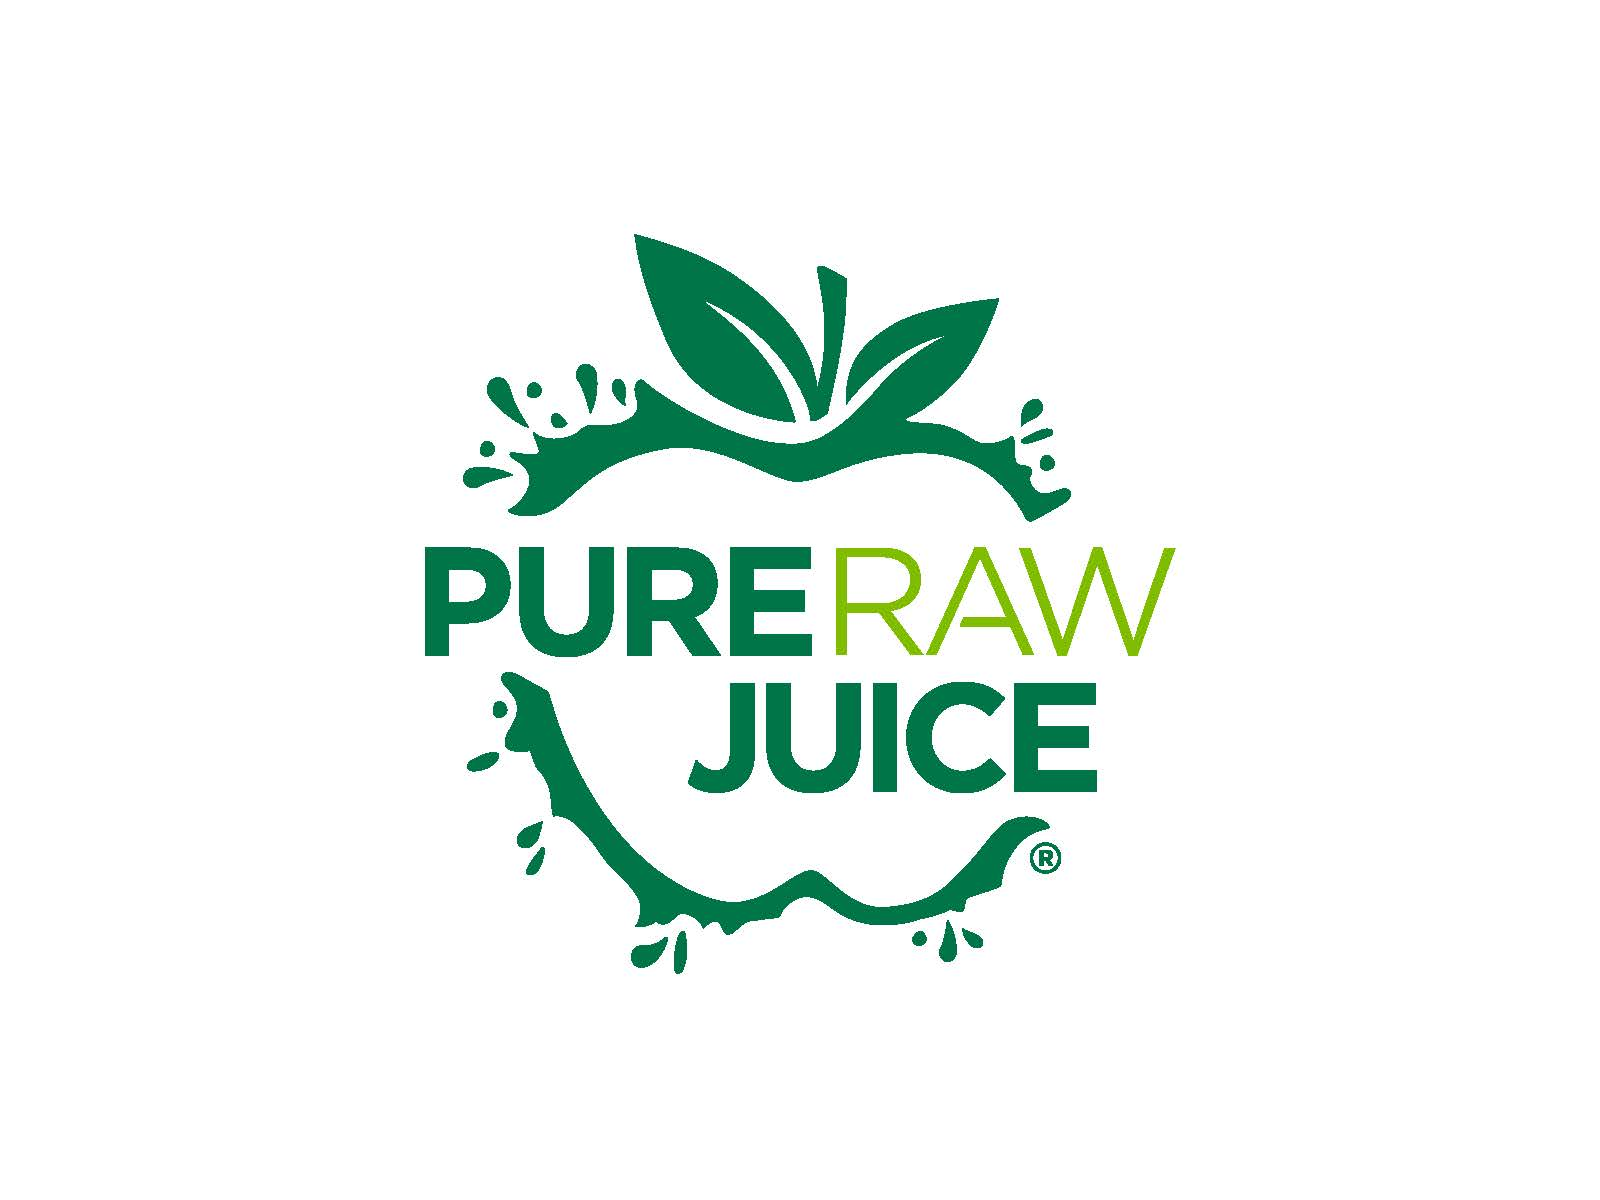 Pure raw juice logo